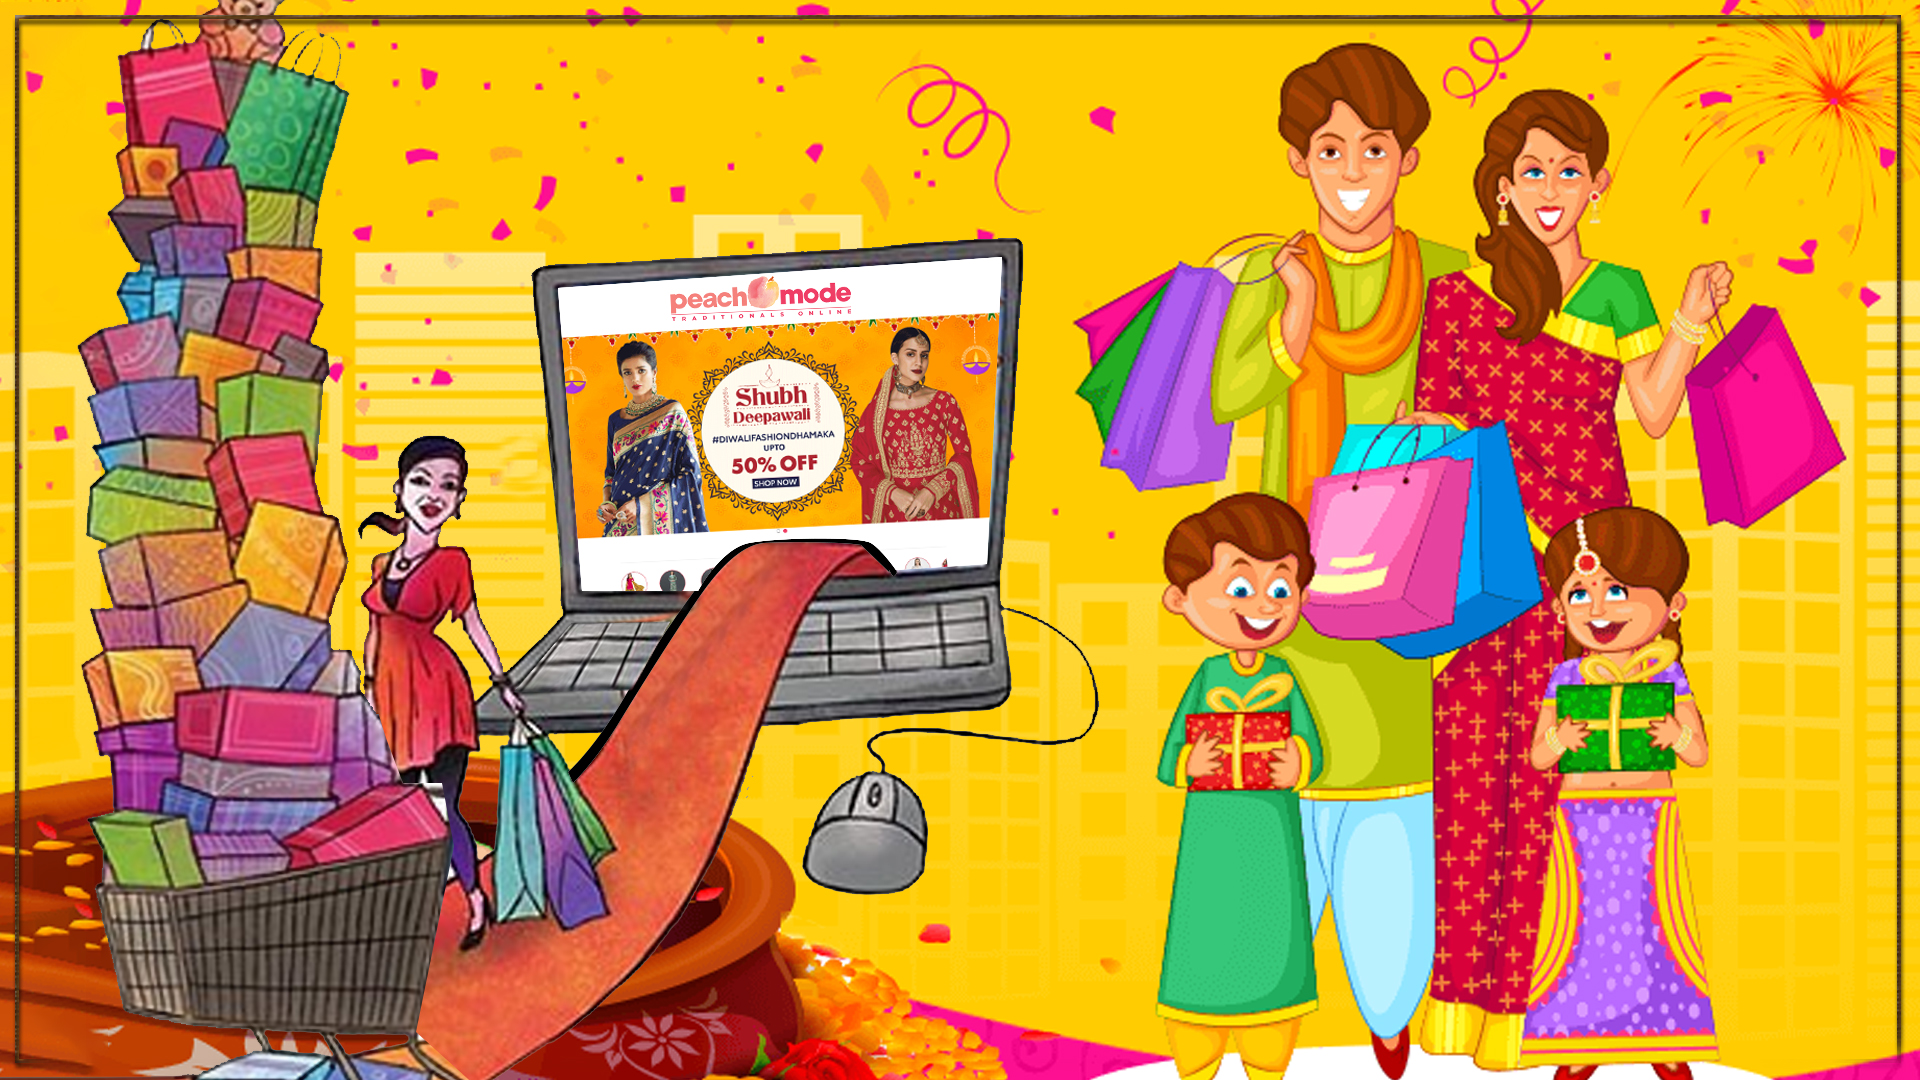 Diwali Gifts: Budget Online Shopping